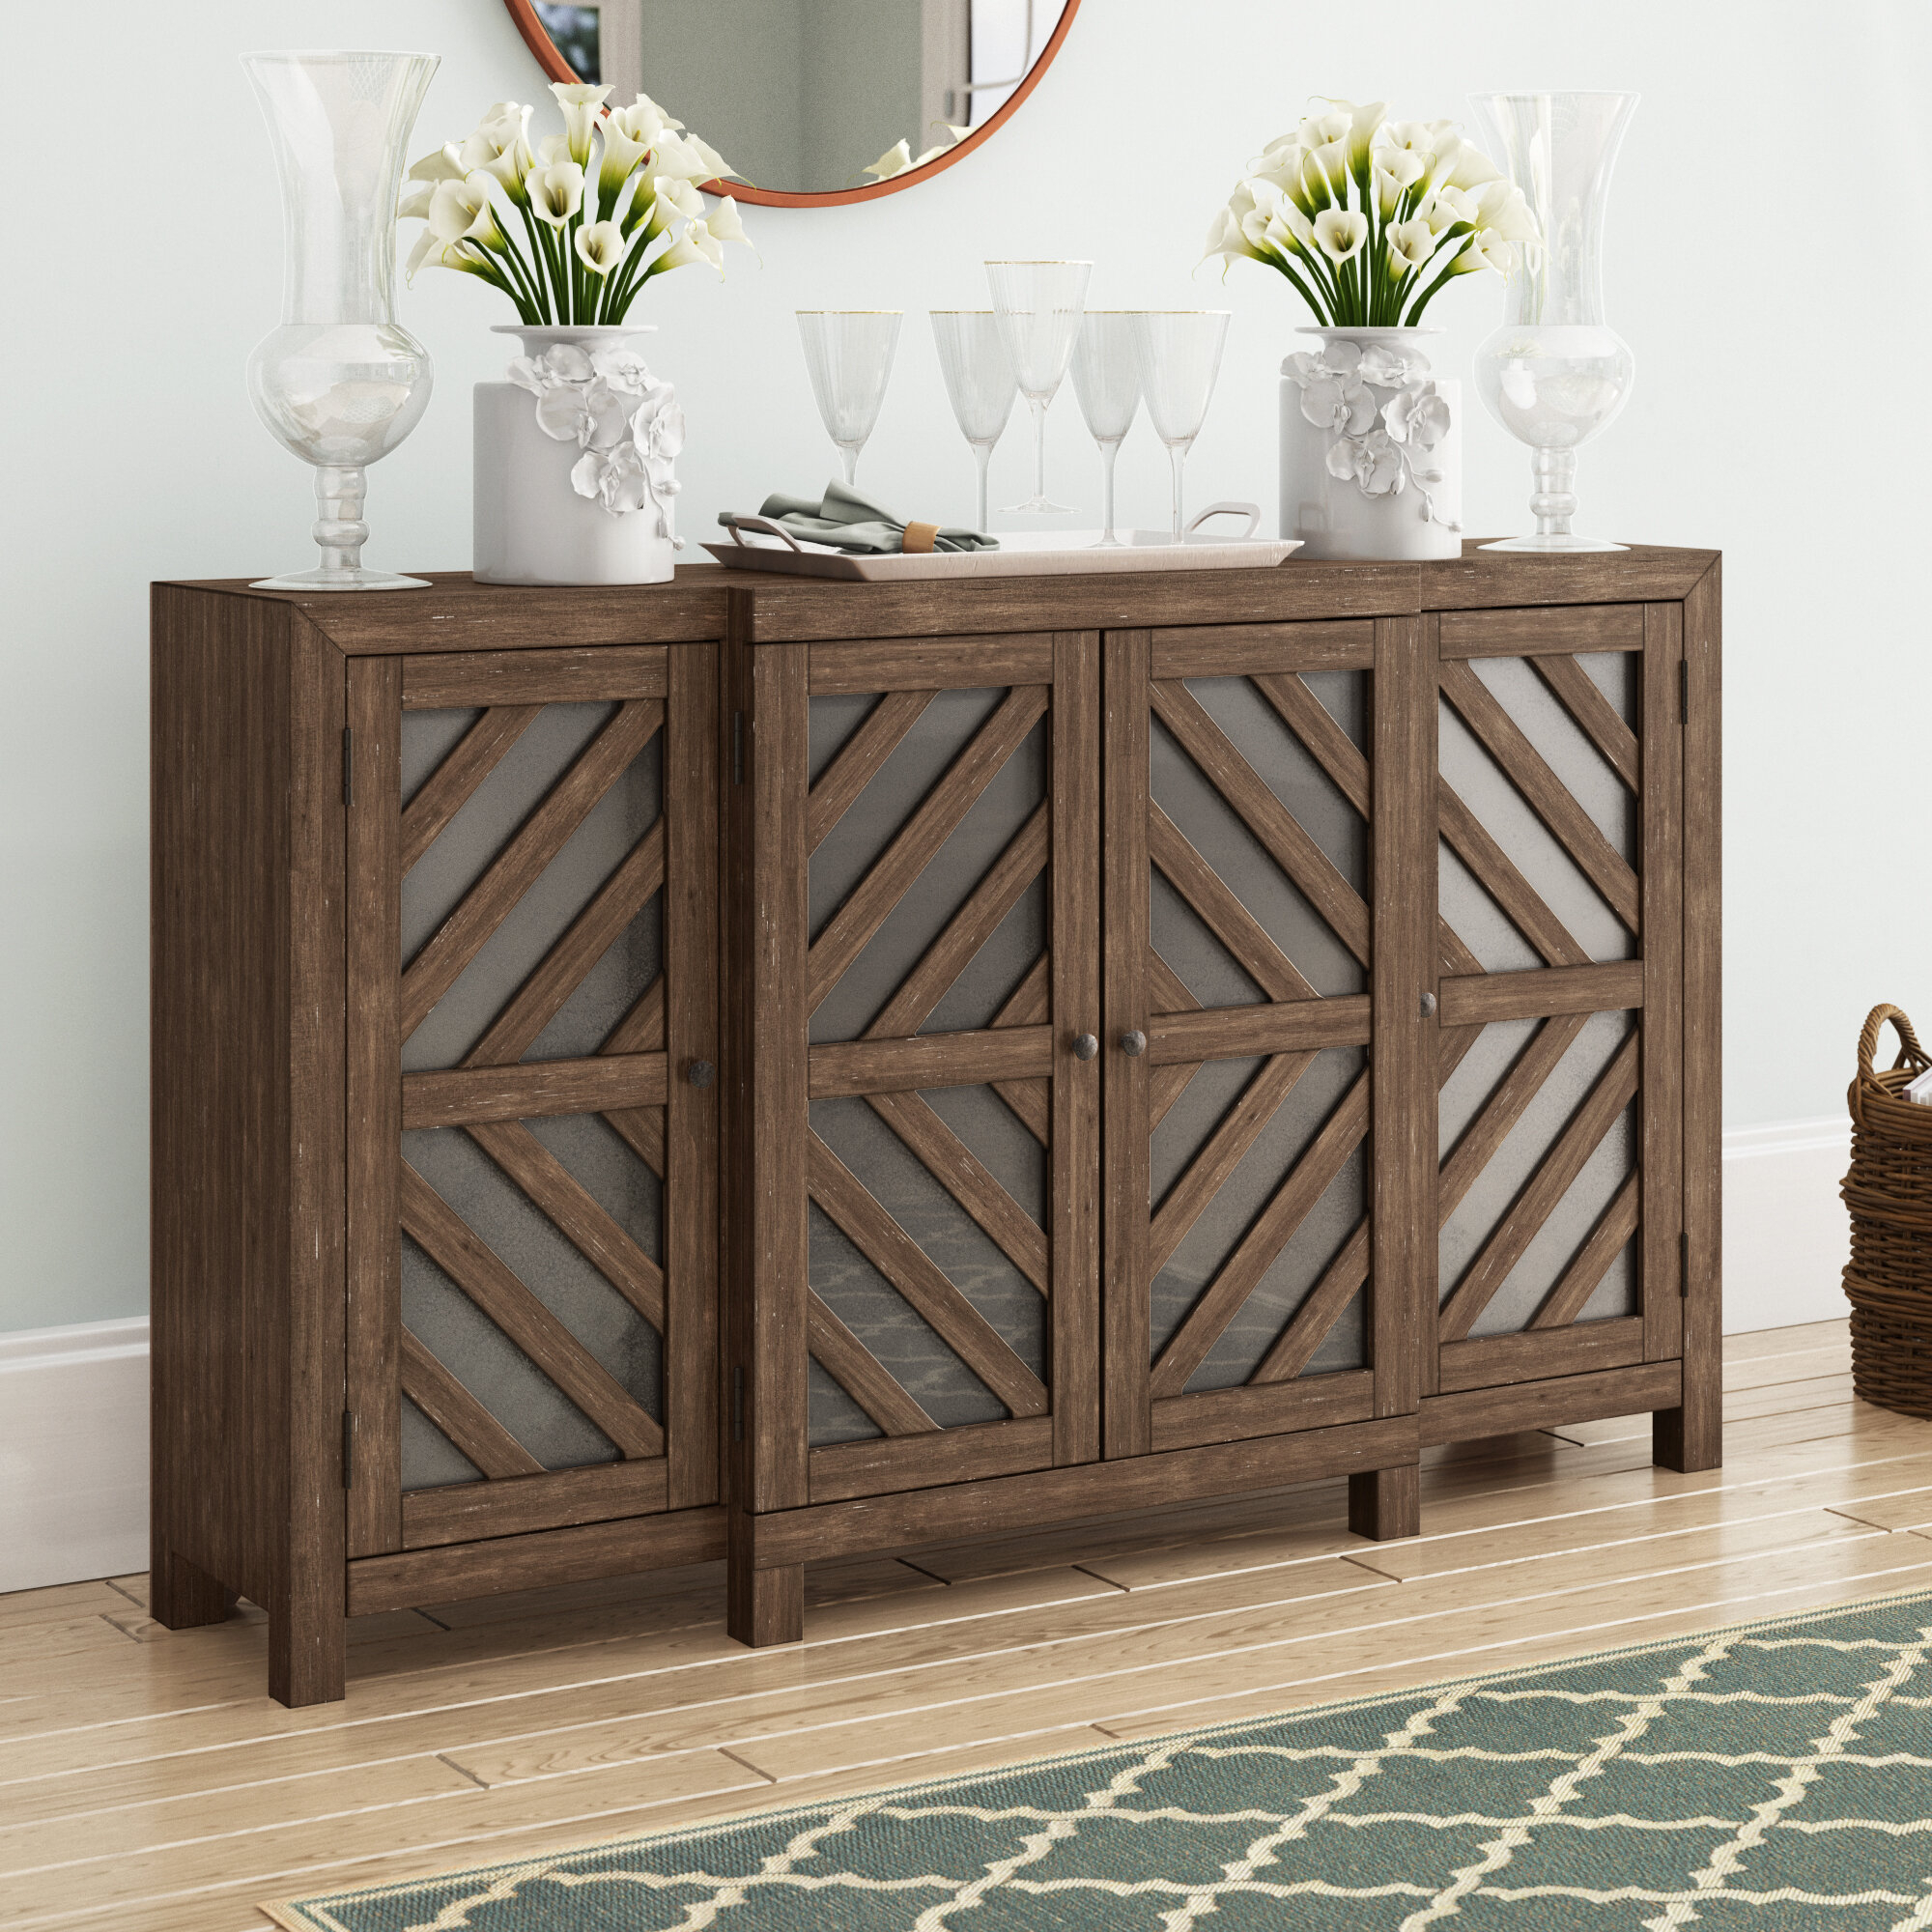 70 Inch Credenza | Wayfair within Lainey Credenzas (Image 2 of 30)